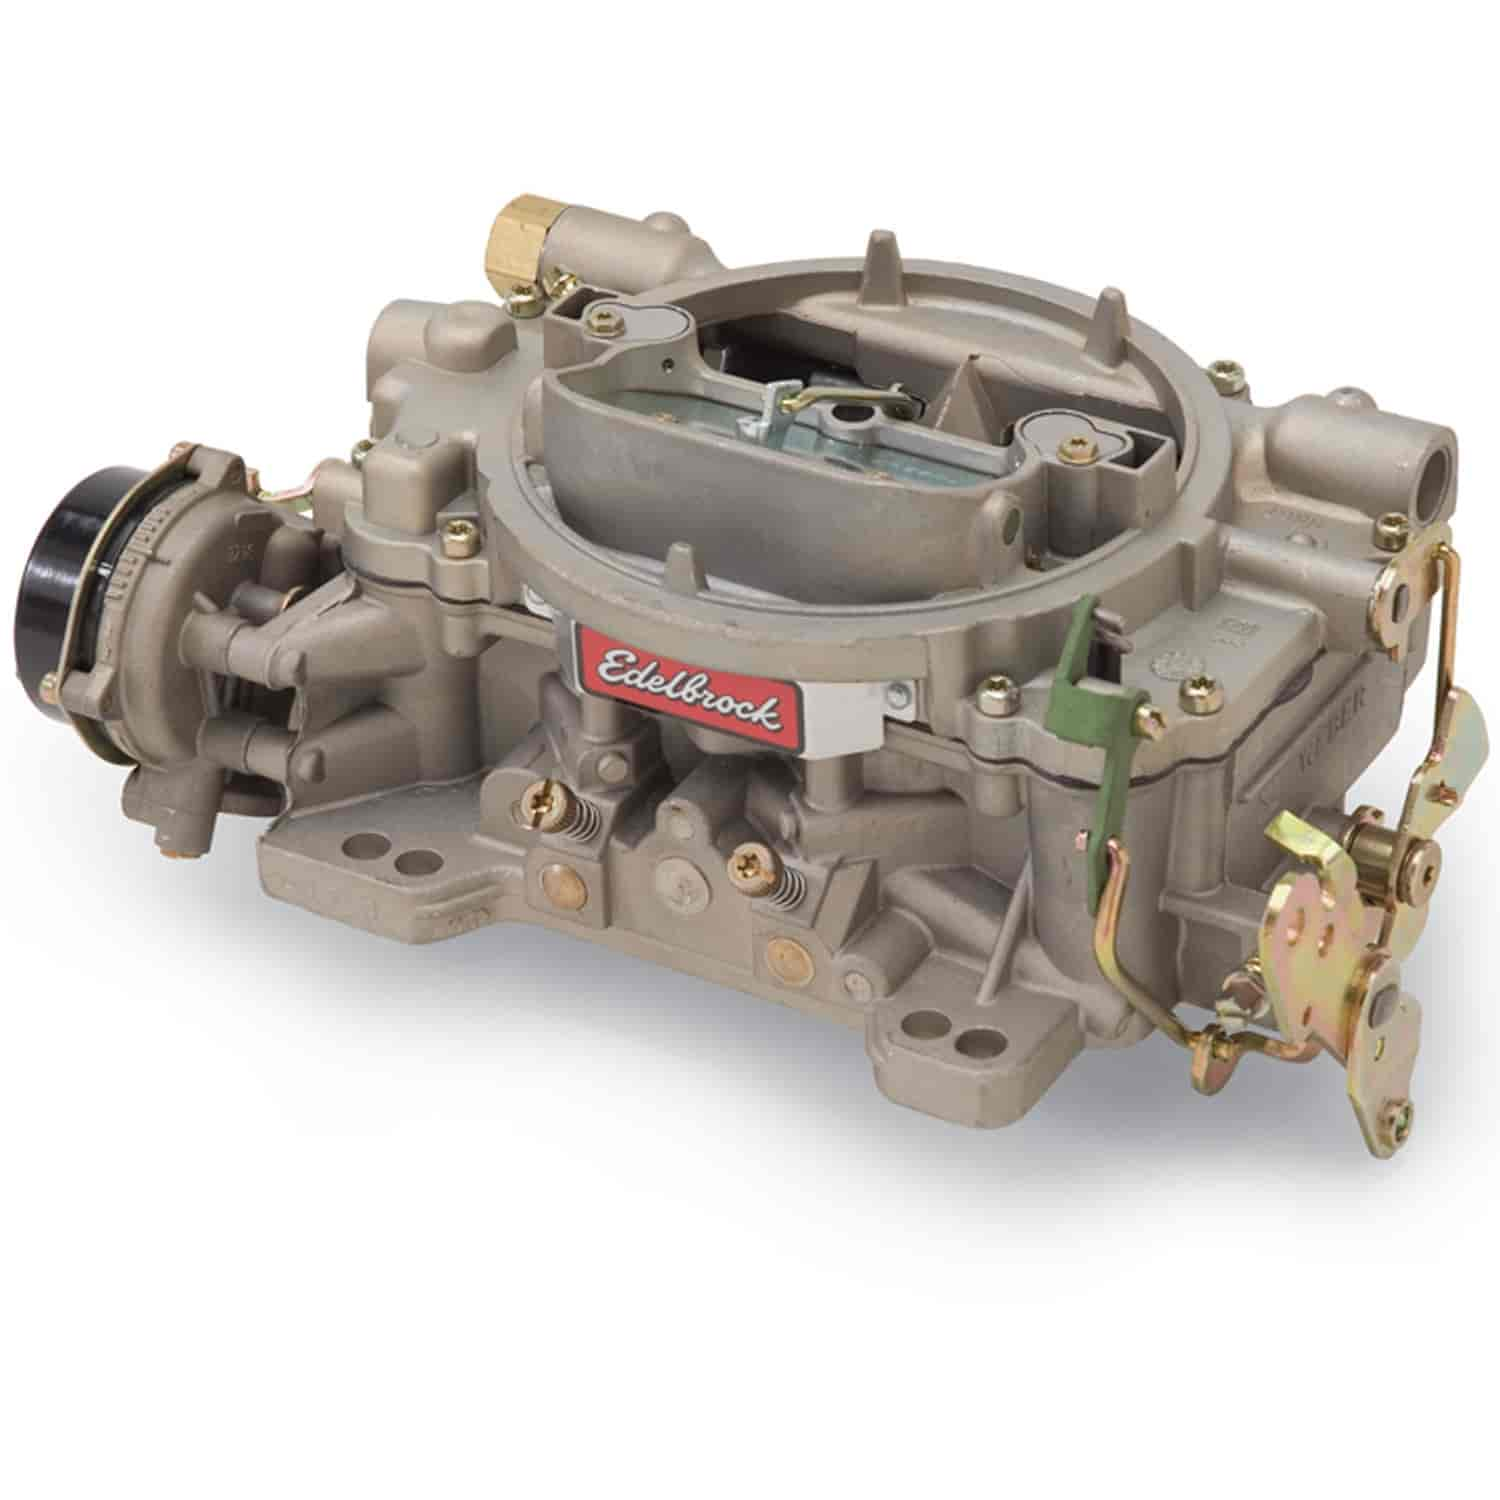 Edelbrock Marine 600 CFM Carburetor with Electric Choke